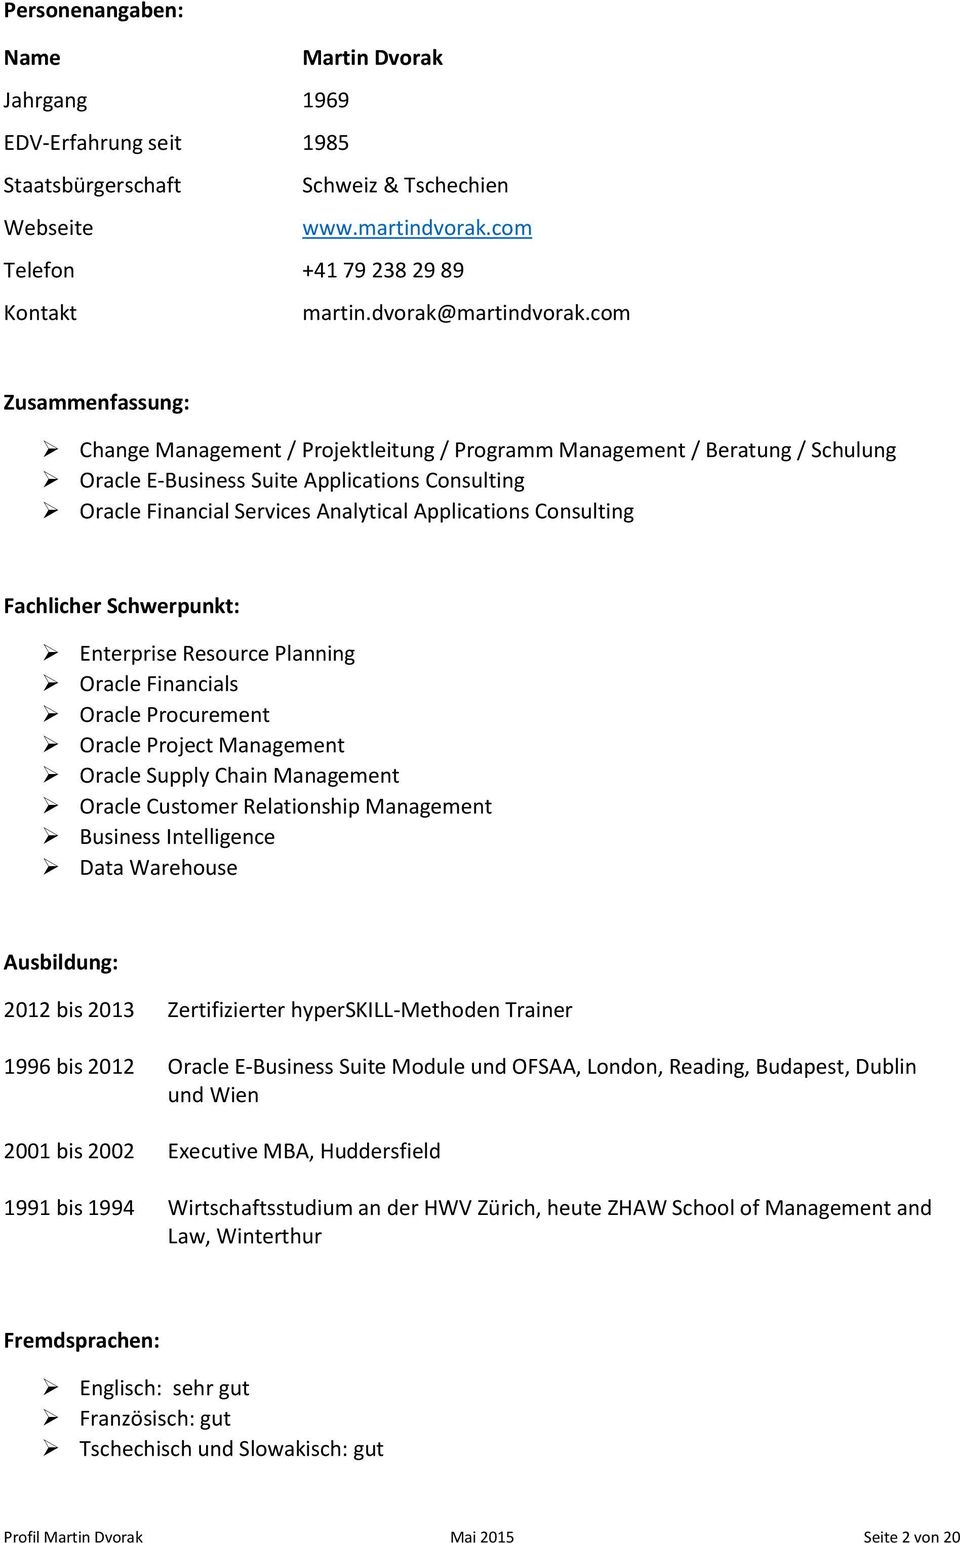 com Zusammenfassung: Change Management / Projektleitung / Programm Management / Beratung / Schulung Oracle E-Business Suite Applications Consulting Oracle Financial Services Analytical Applications